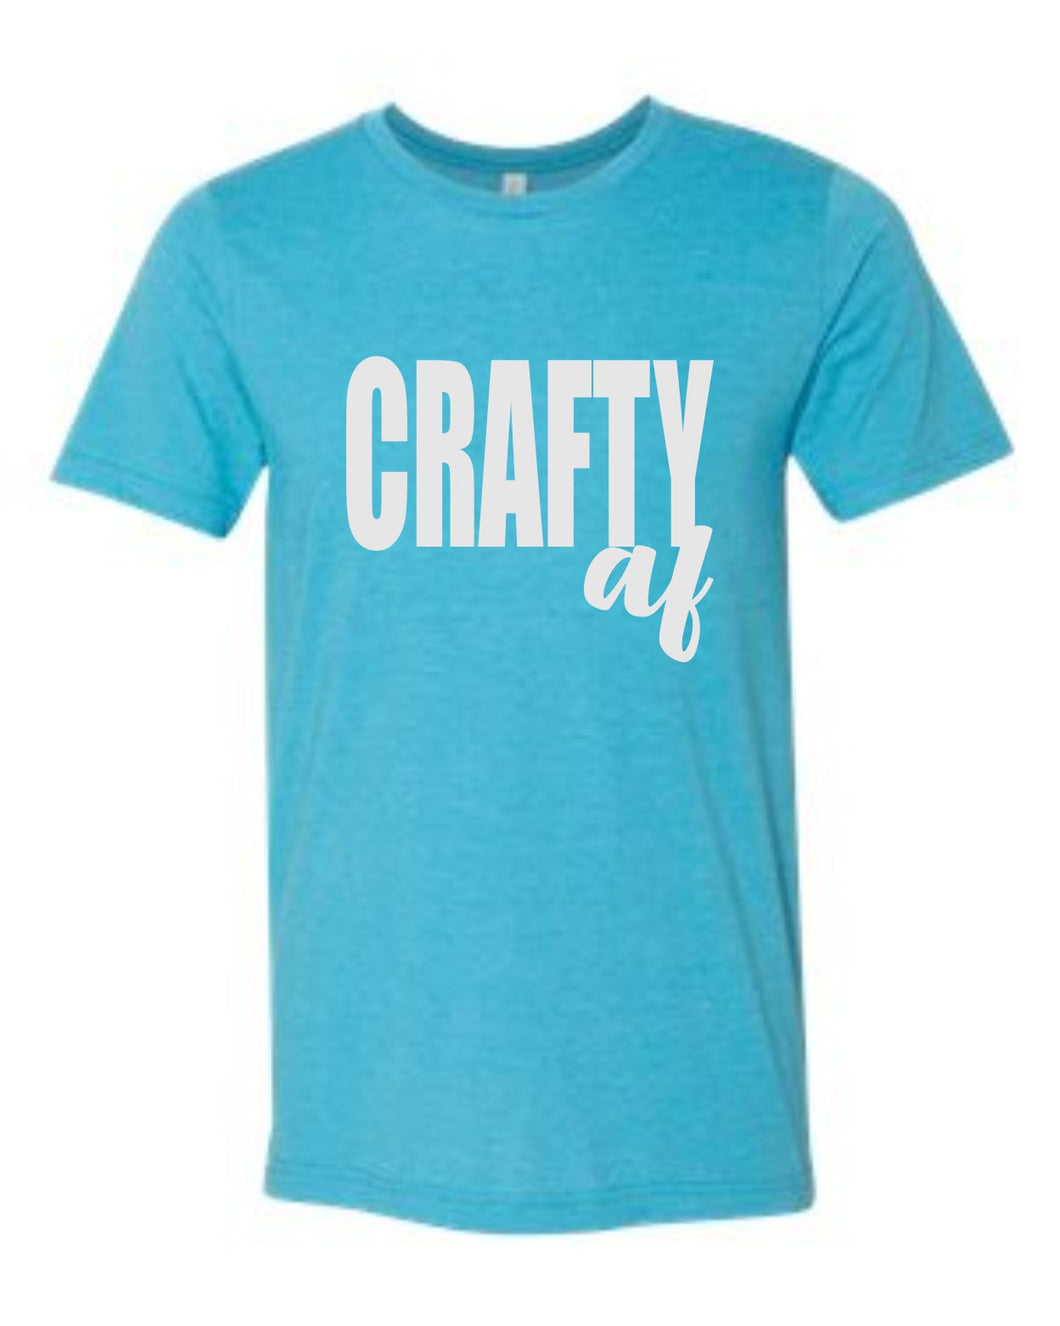 Crafty AF Short Sleeve Graphic T-shirt